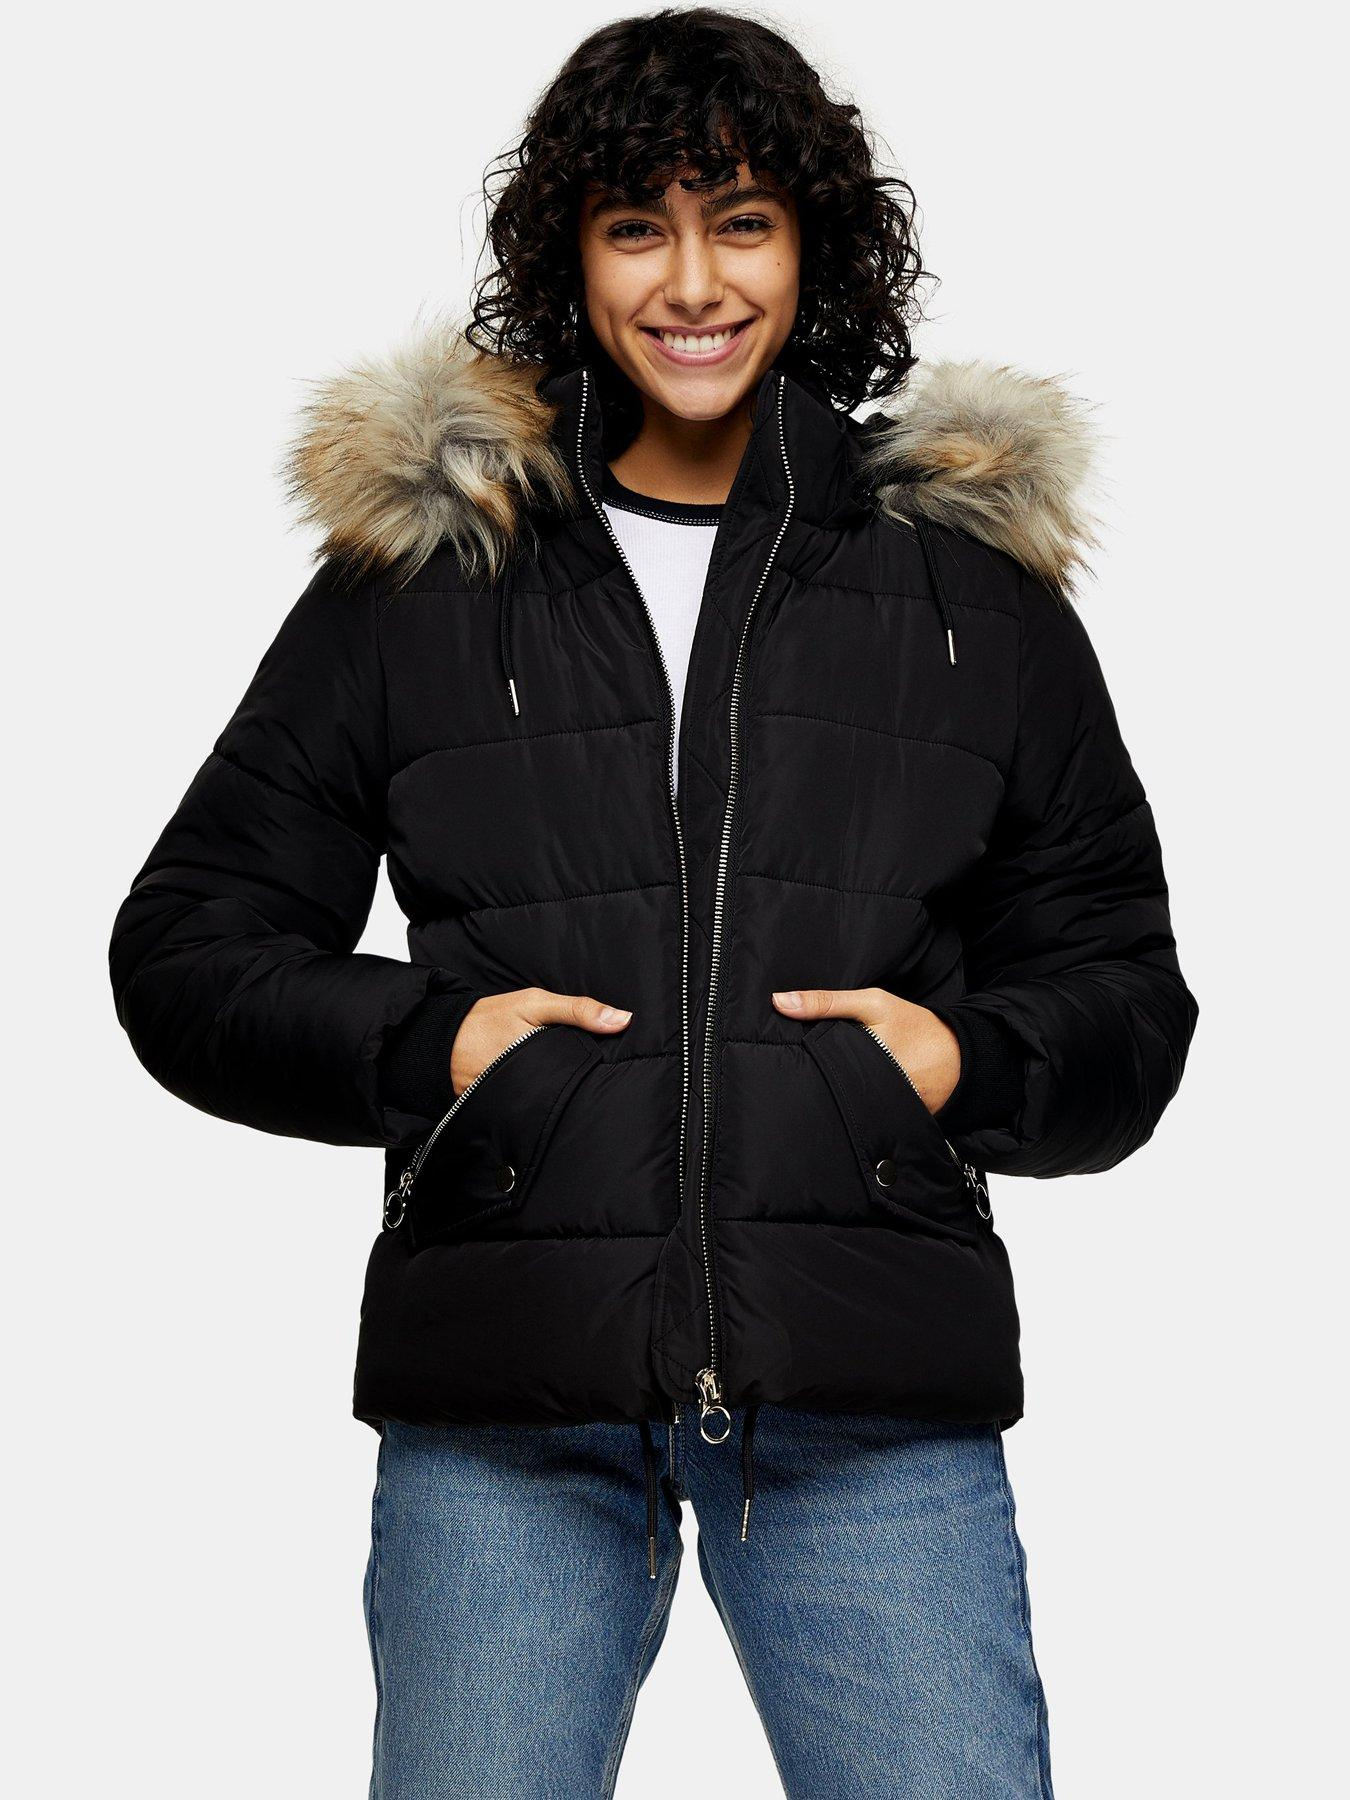 Details about WAS £60 New Look Black Warm Padded Parka Jacket School Coat Faux Fur Hooded